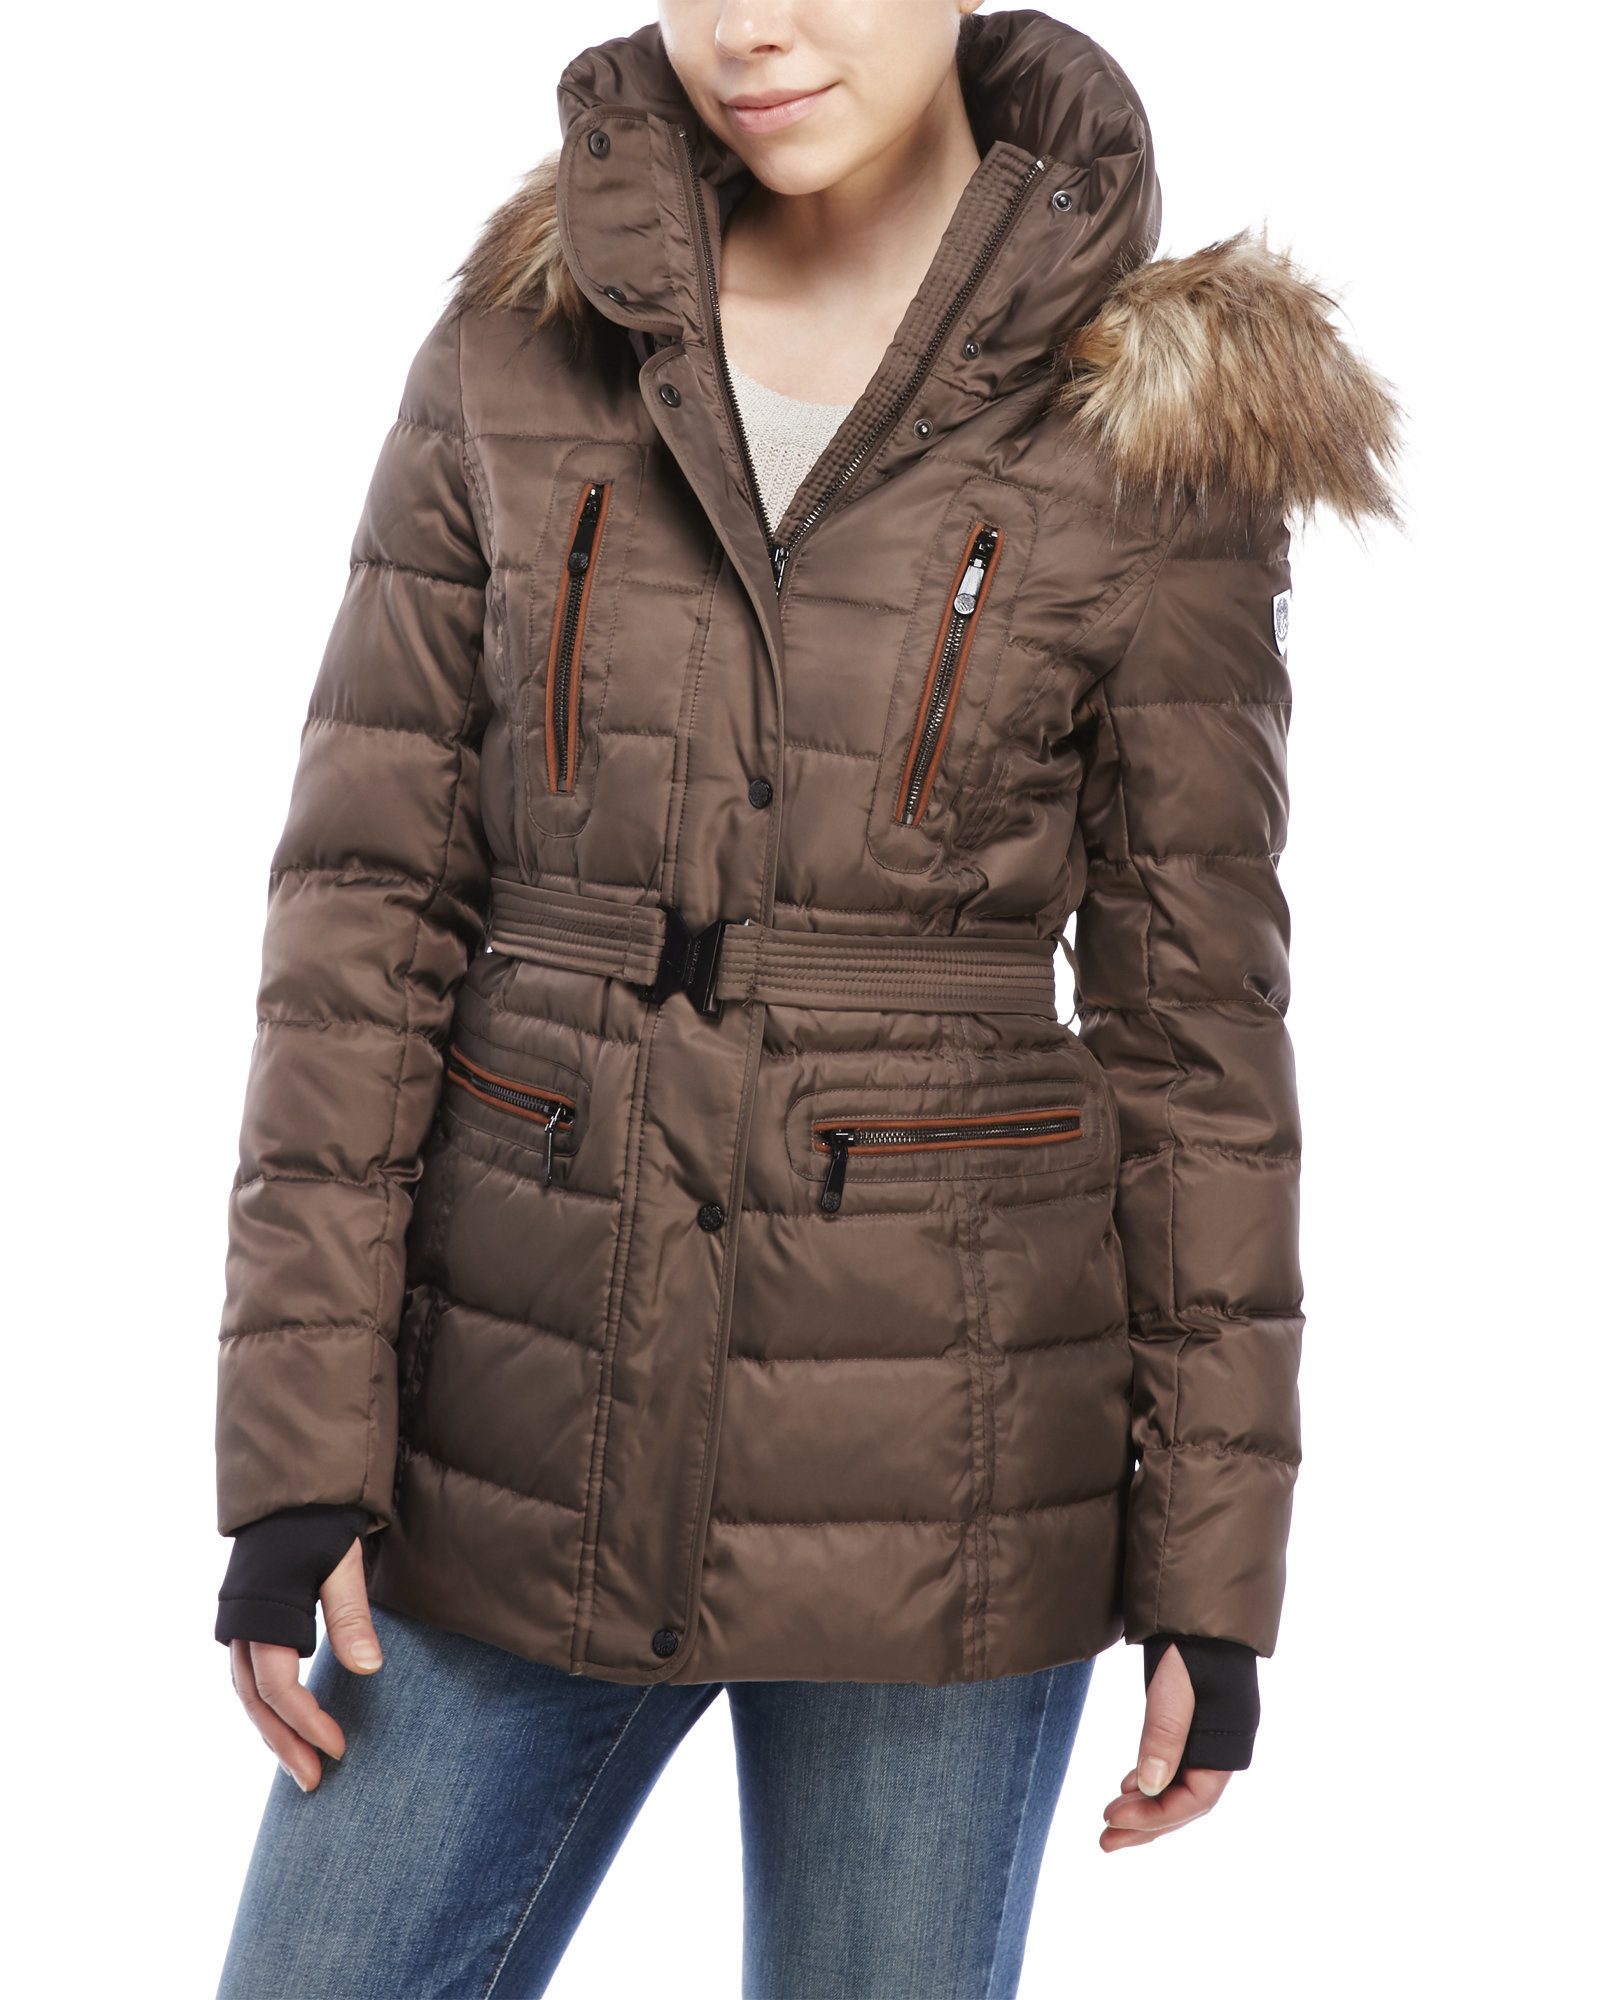 Vince camuto Belted Down Jacket With Faux Fur Trim in Brown   Lyst